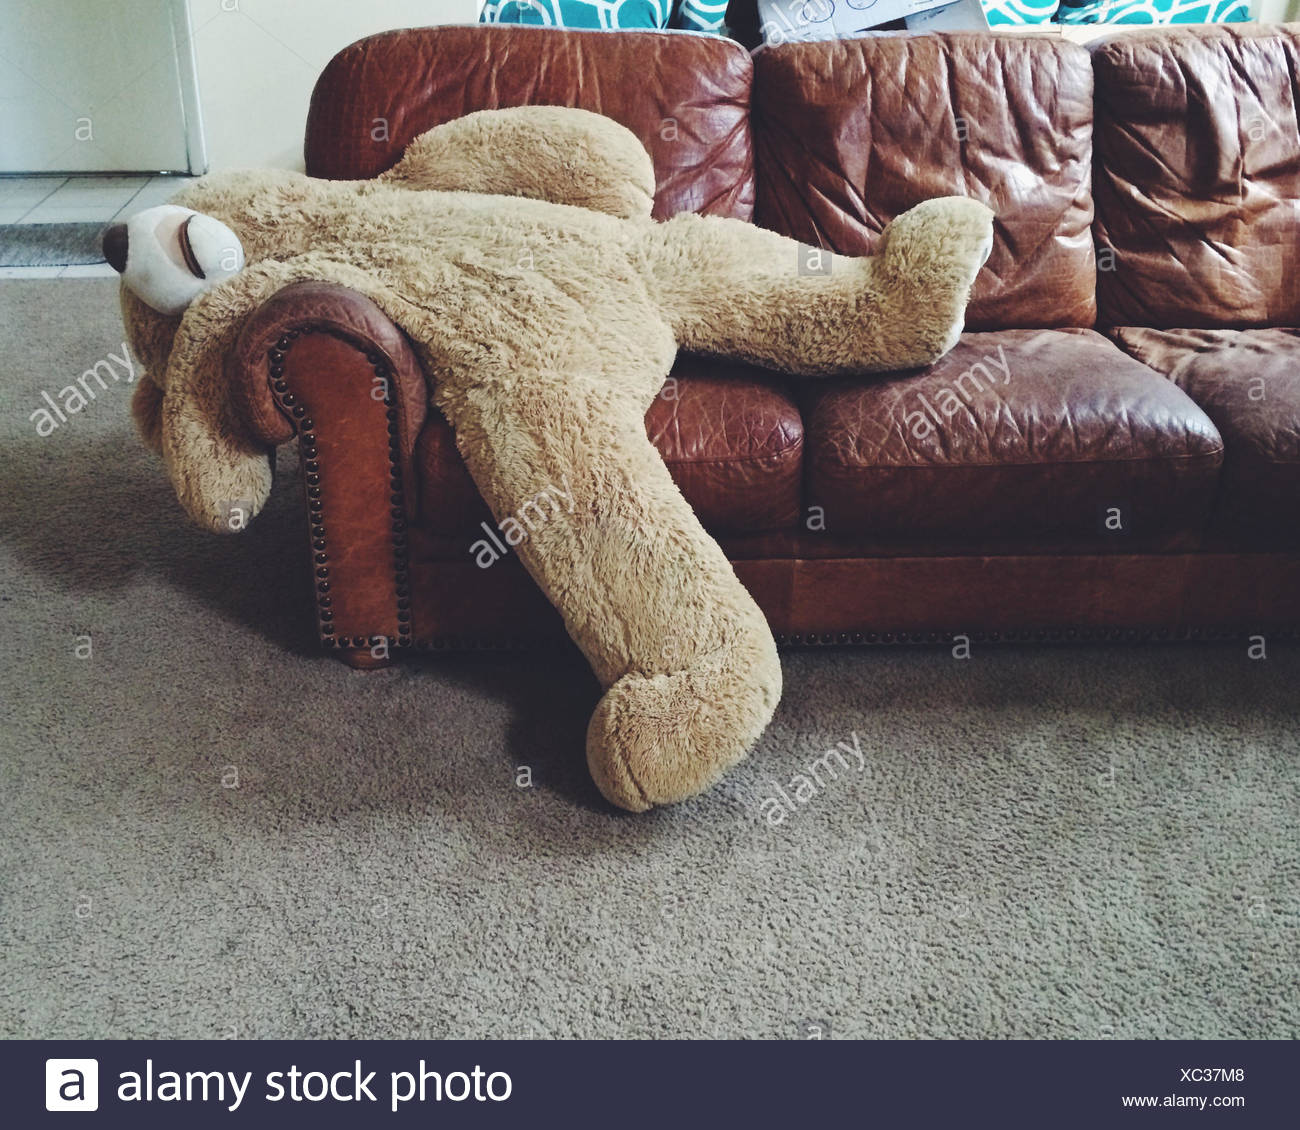 Stuffed teddy bear laying on couch - Stock Image